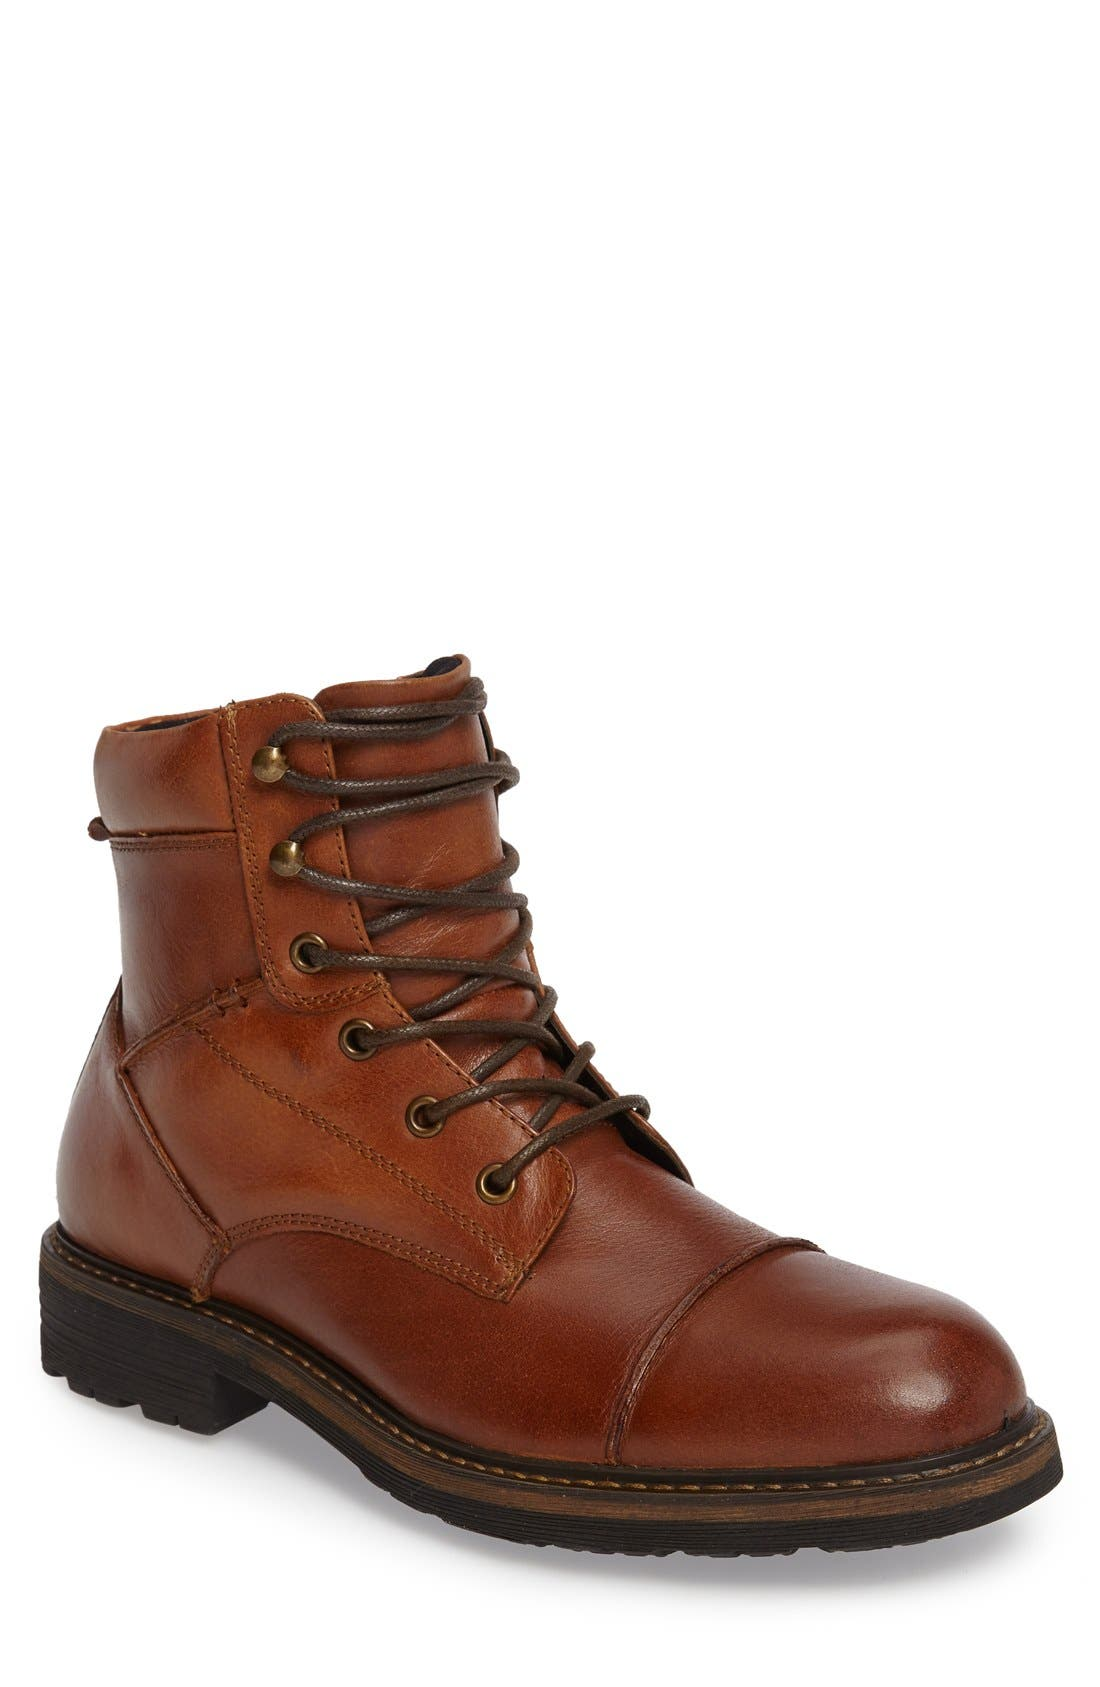 Derek Cap Toe Boot,                             Main thumbnail 2, color,